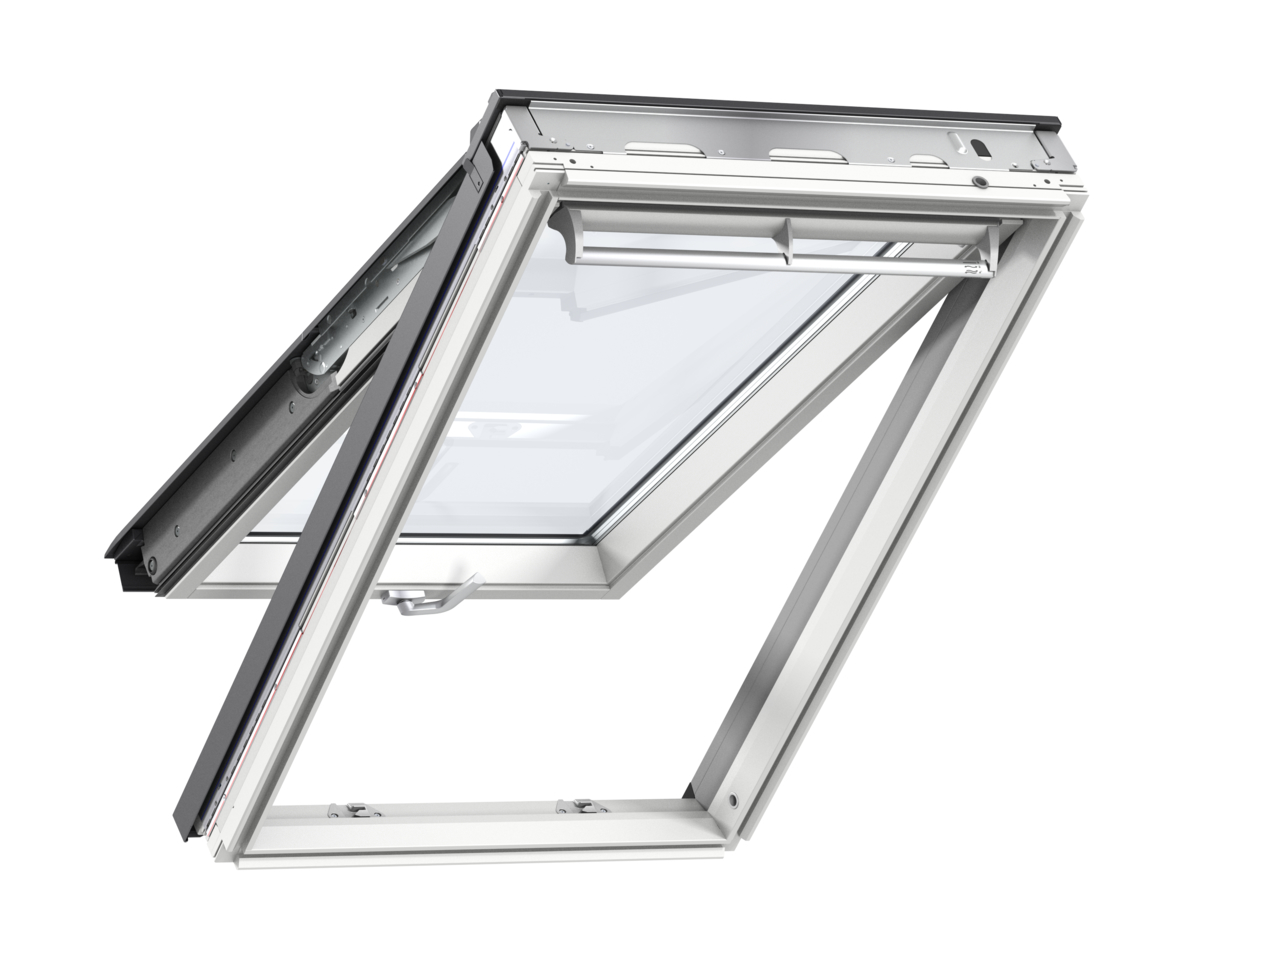 Velux GPL MK04 780 x 980mm Top Hung 60Pane Roof Window - White Painted